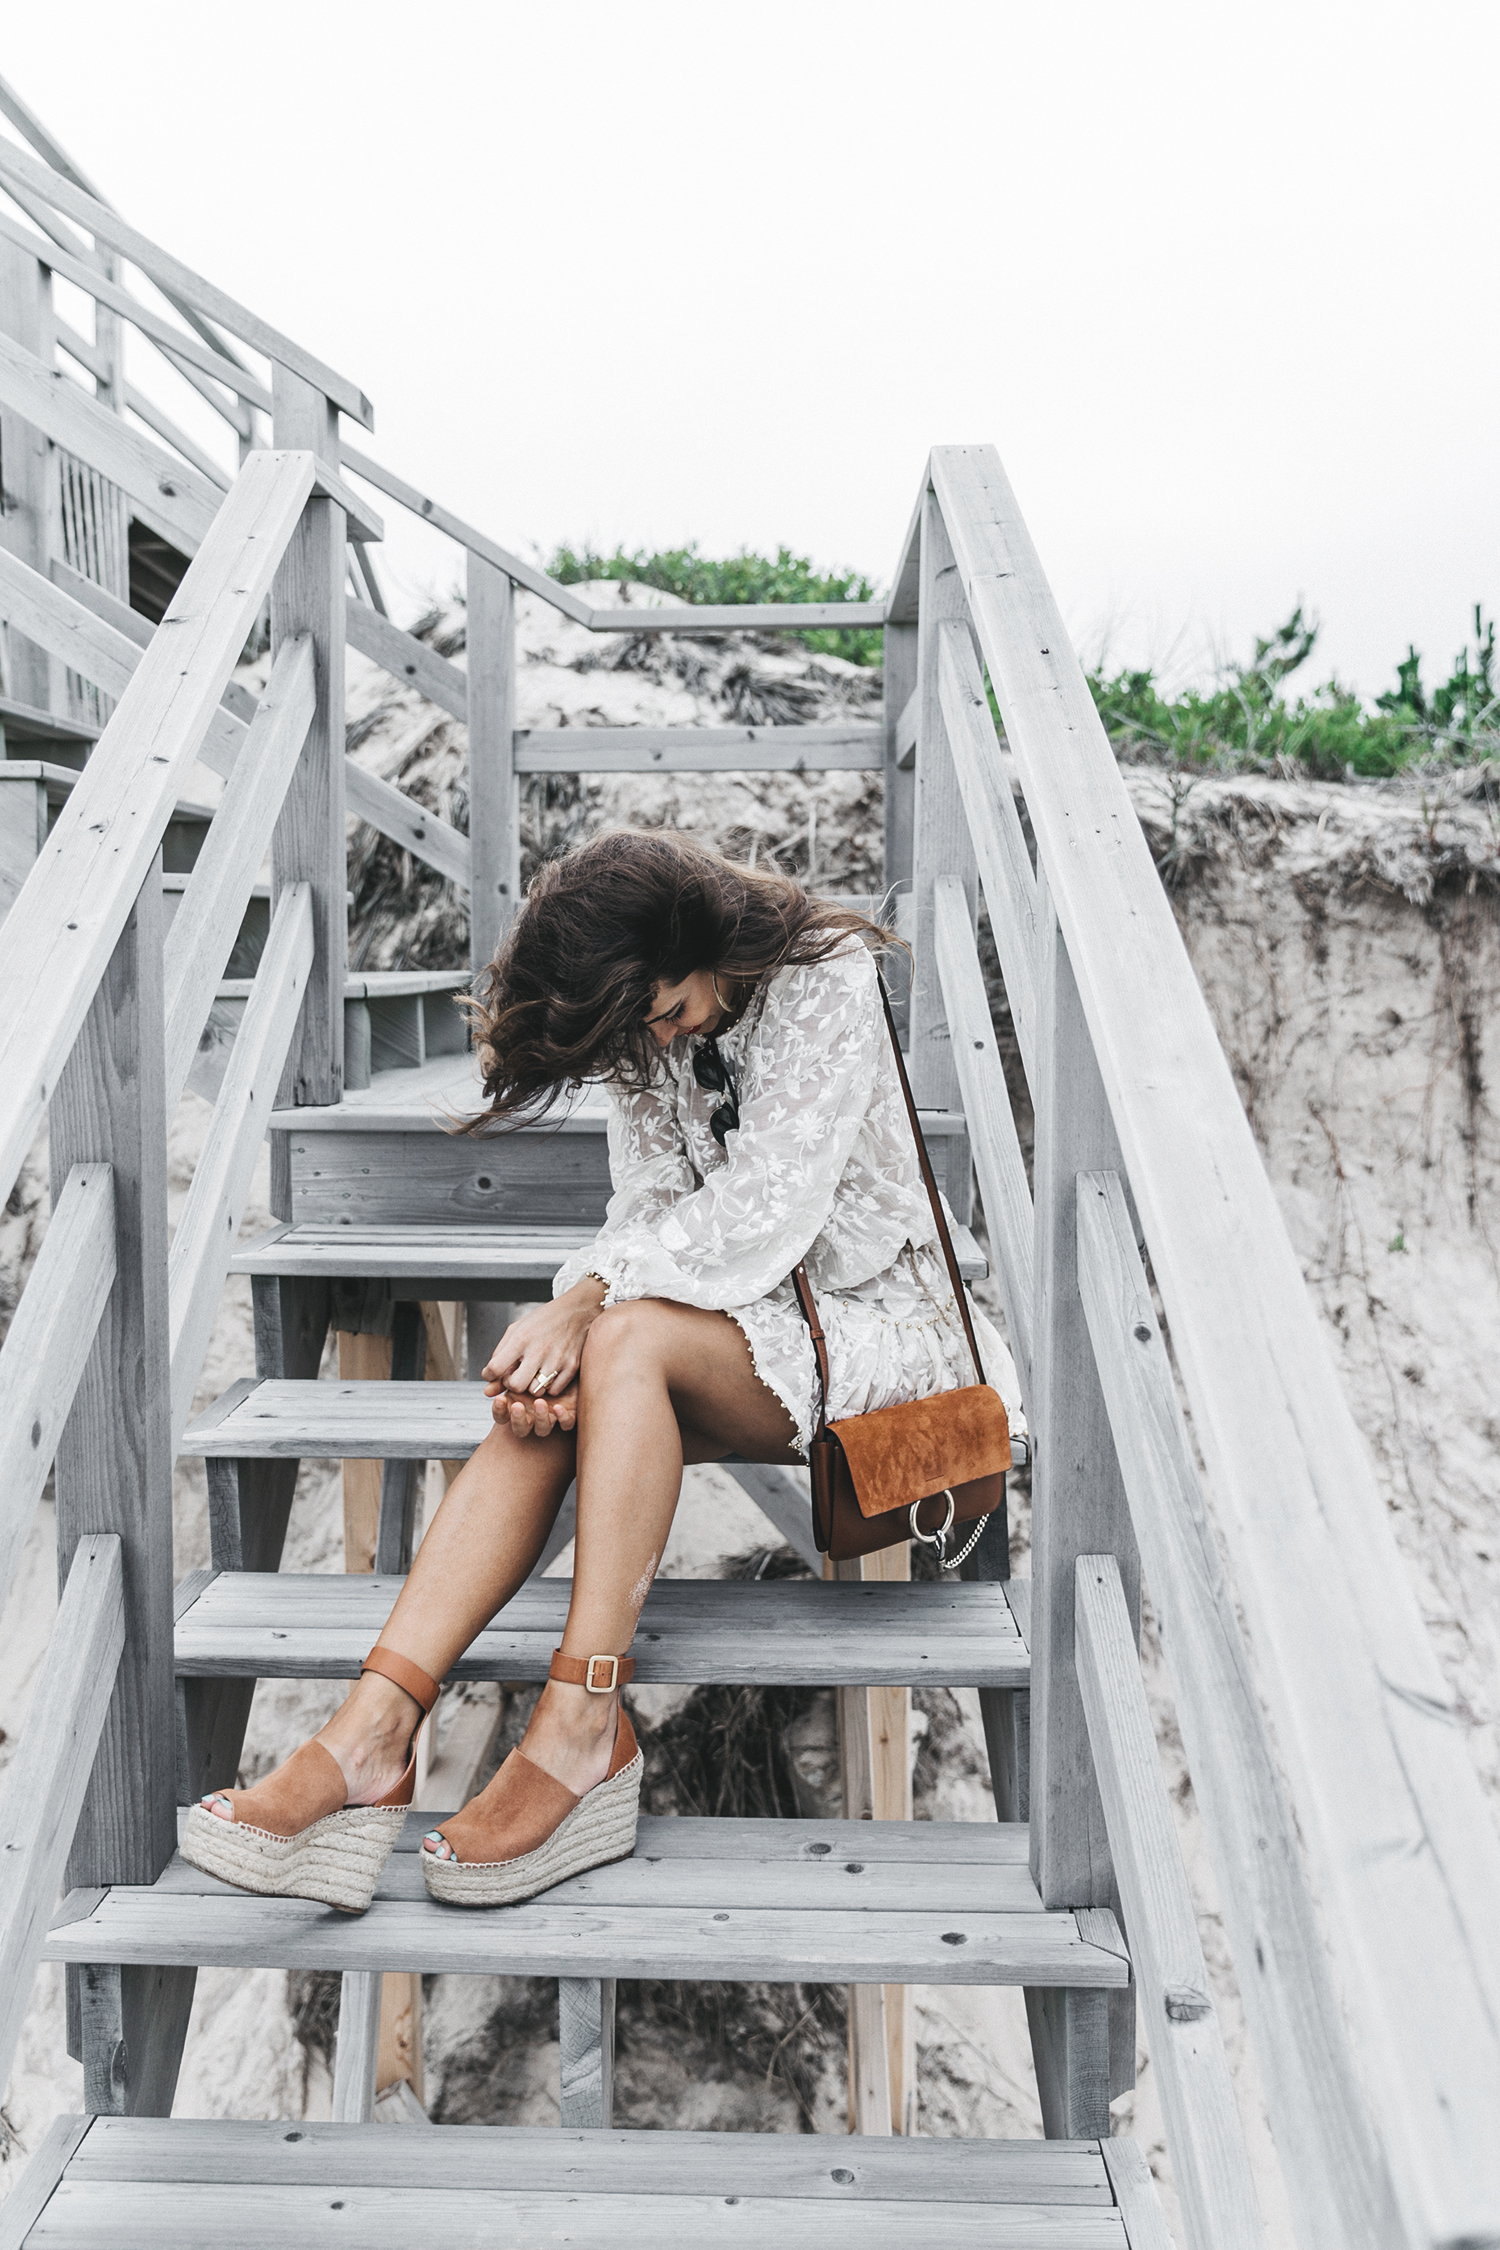 Revolve_in_The_Hamptons-Zimmermann-Embroidered_Dress-WHite_Dress-Chloe_Fay_Bag-Chloe_Wedges-Outfit-158